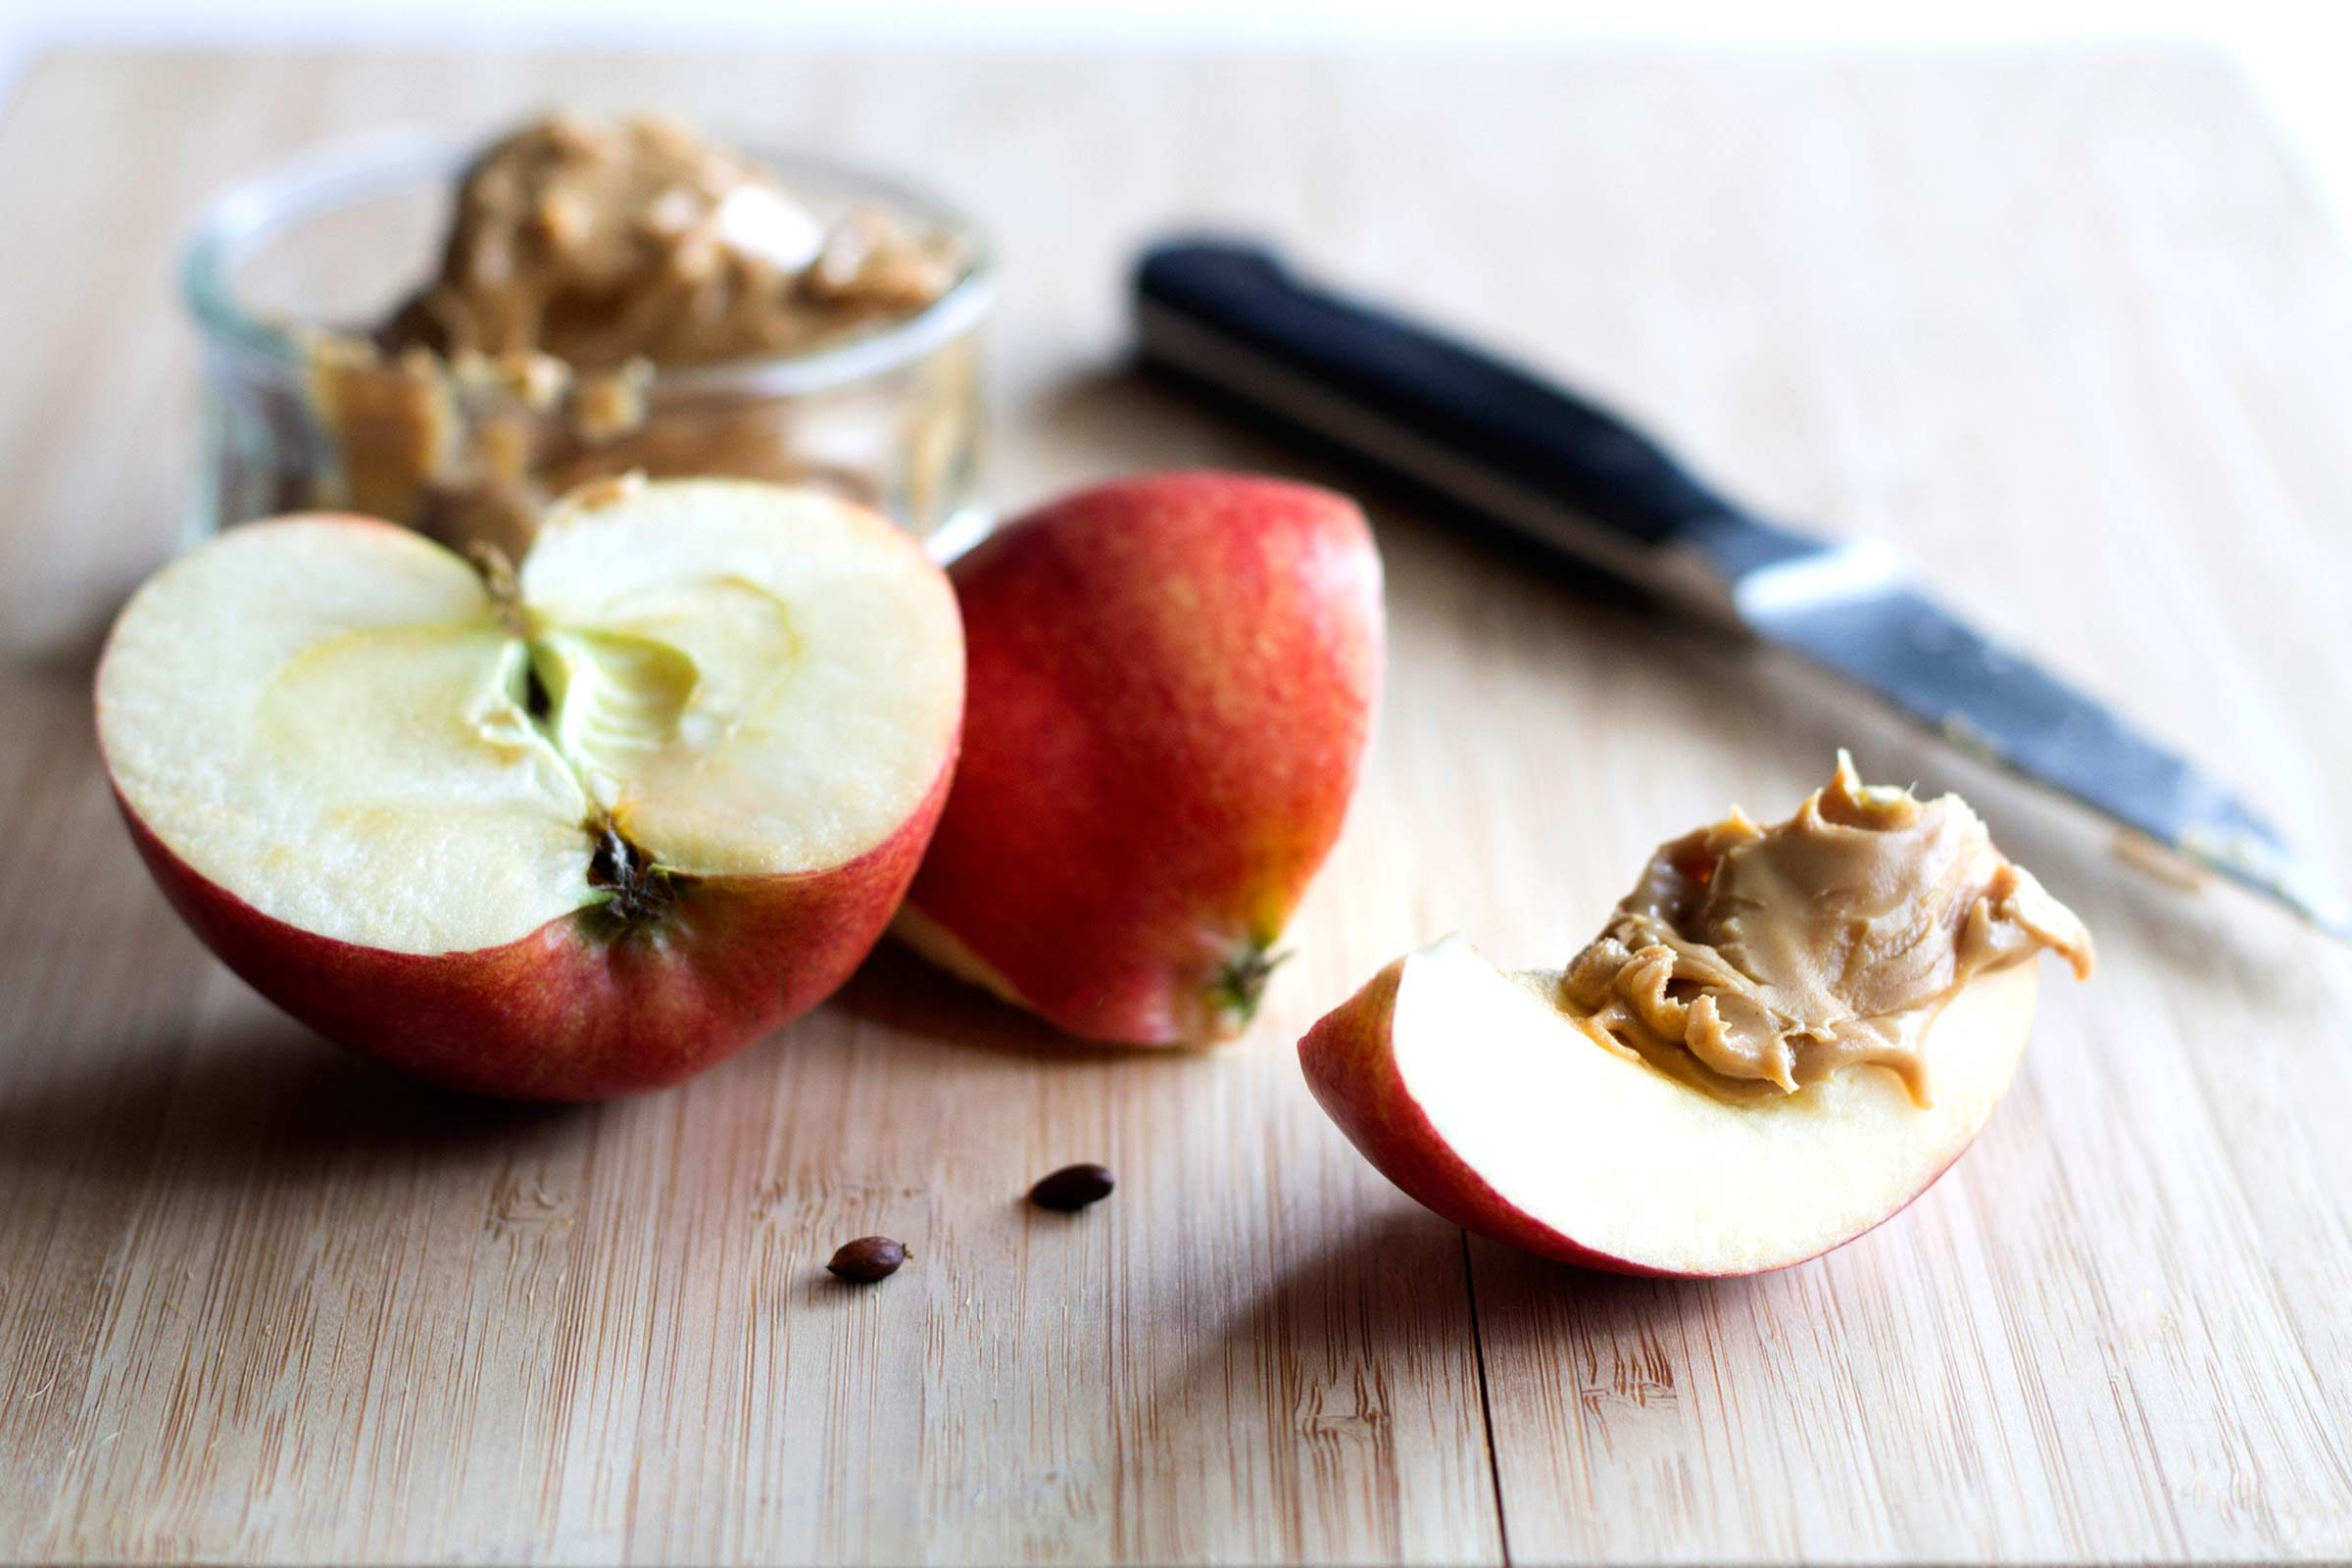 refuel after exercise | apple and peanut butter